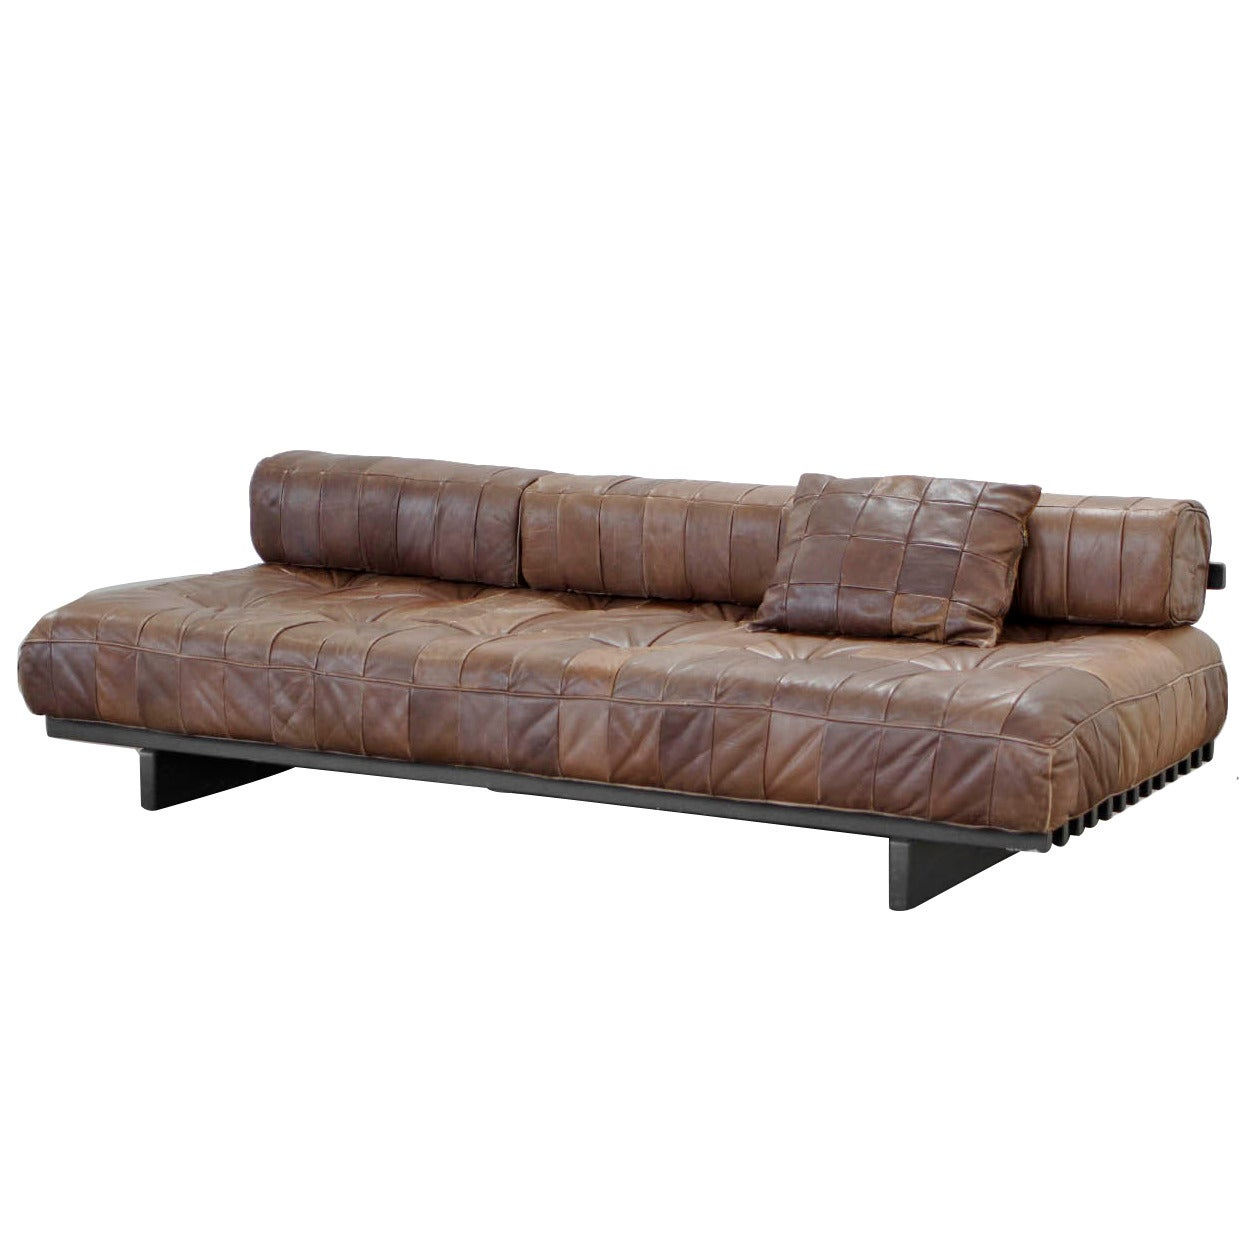 Classic daybed sofa by de sede ds 80 1972 at 1stdibs for Sofa 1 80 largura